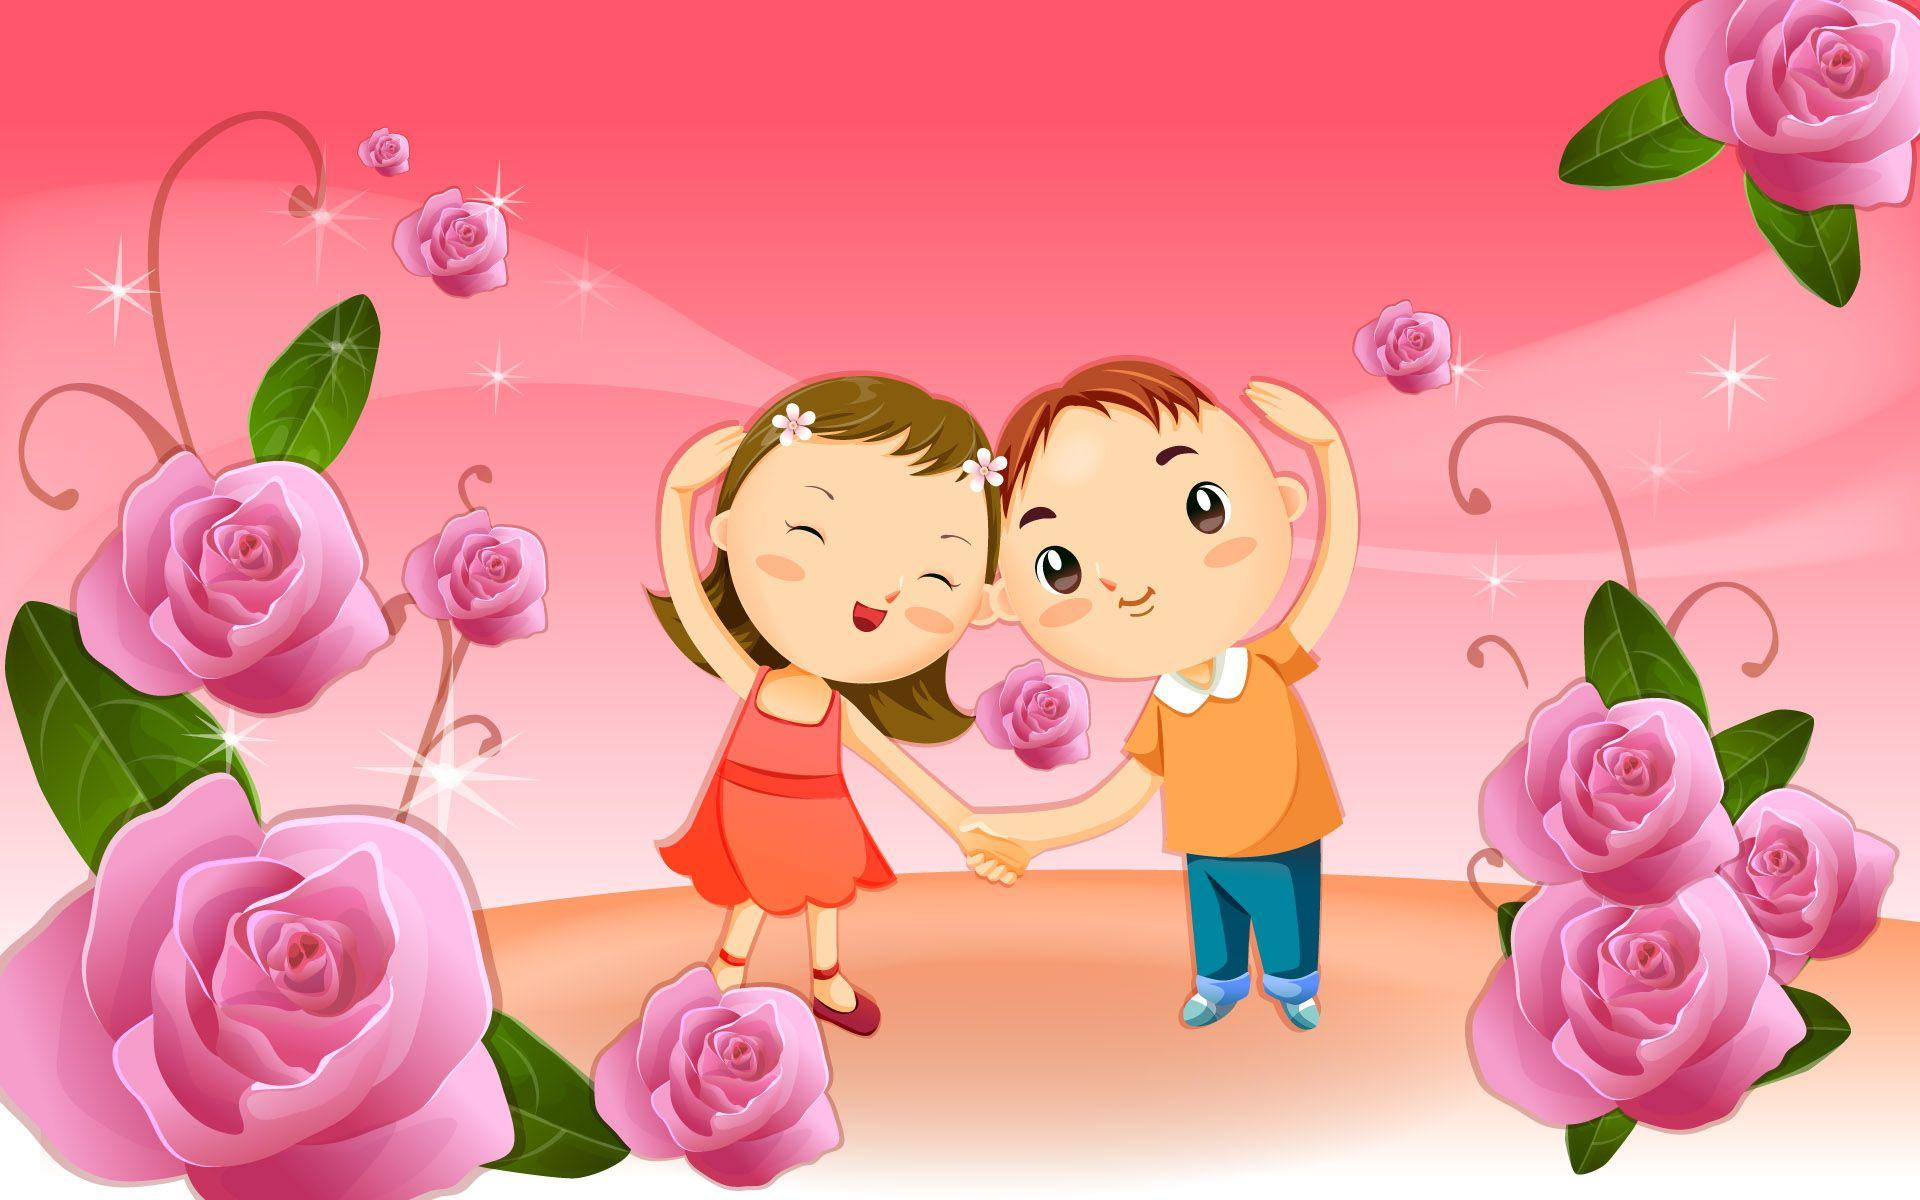 Best Love cartoon Wallpaper : Love cartoon Wallpapers - Wallpaper cave